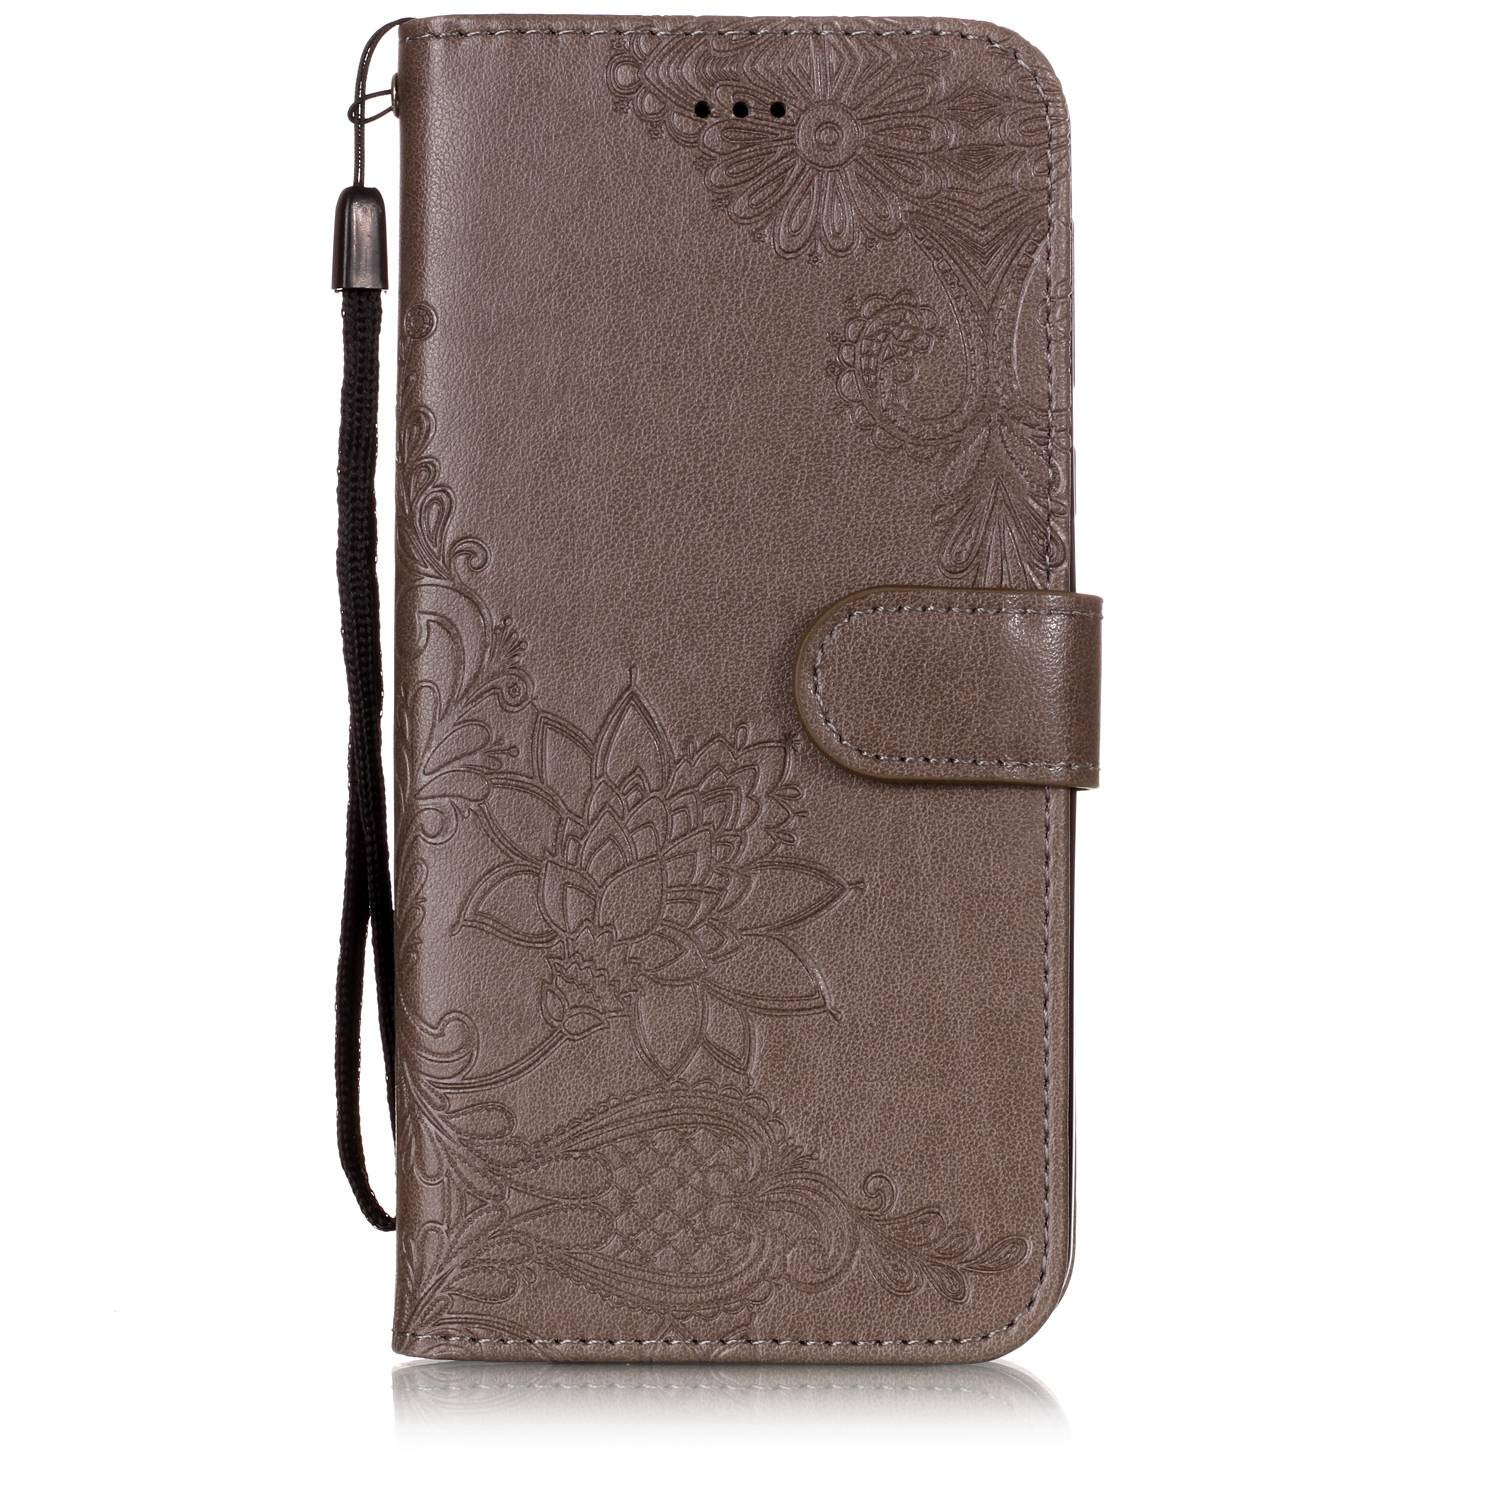 Shinyzone Wallet Case for Moto G6 Plus,Embossed Henna Mandala Pattern Series,Smart Stand and Magnetic Closure Leather Folio Flip Cover with ID Credit Card Slots-Gray